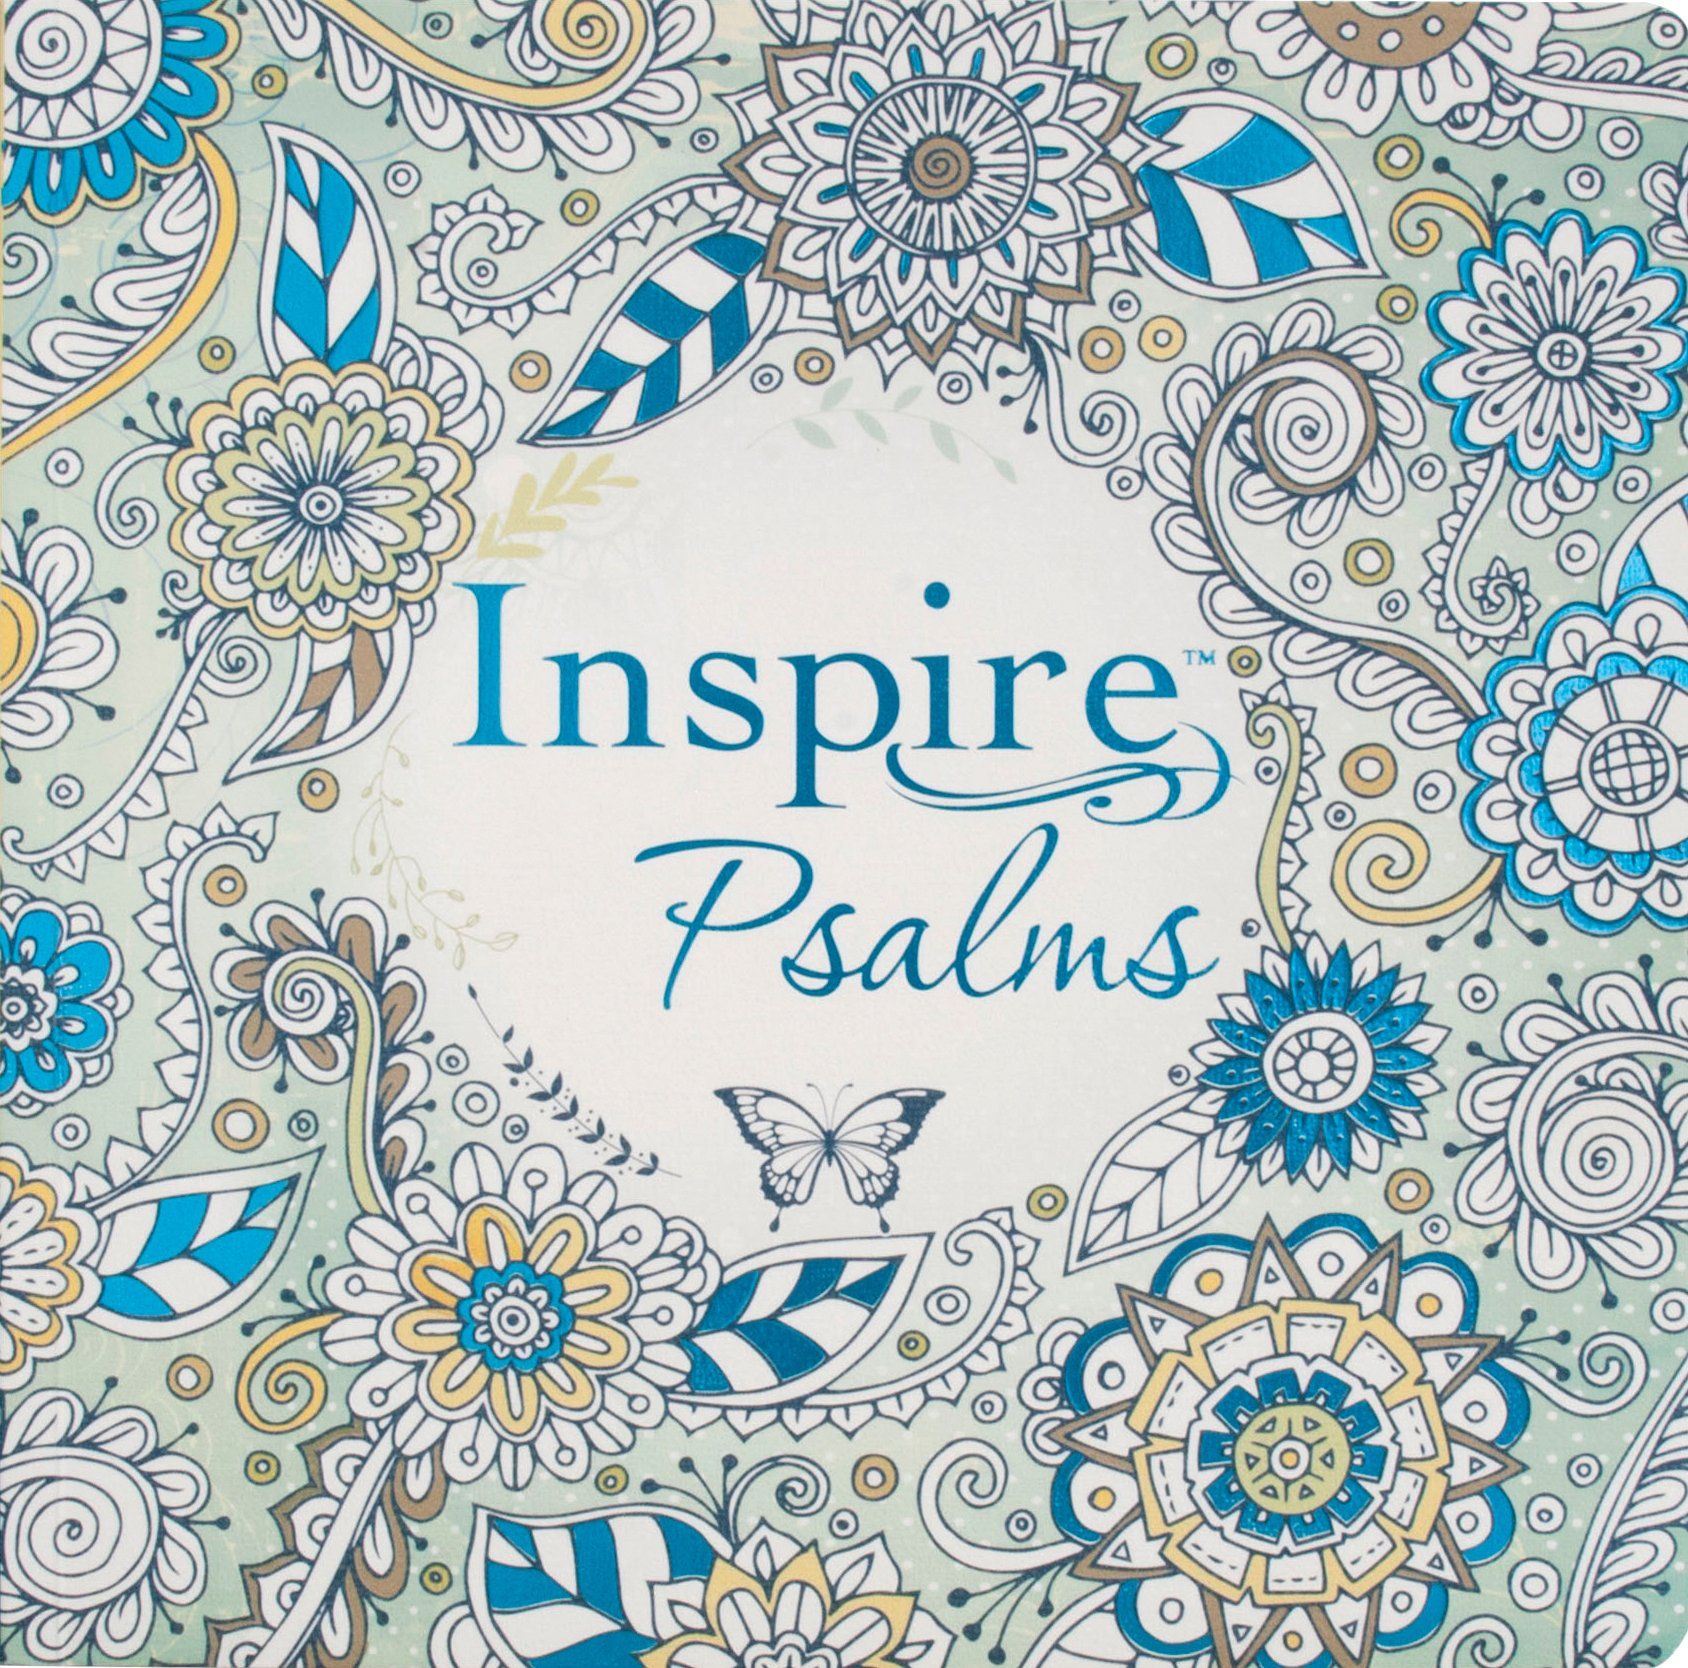 Coloring pages psalm 33 - Amazon Com Inspire Psalms Coloring Creative Journaling Through The Psalms 9781496419873 Tyndale Christian Art Books